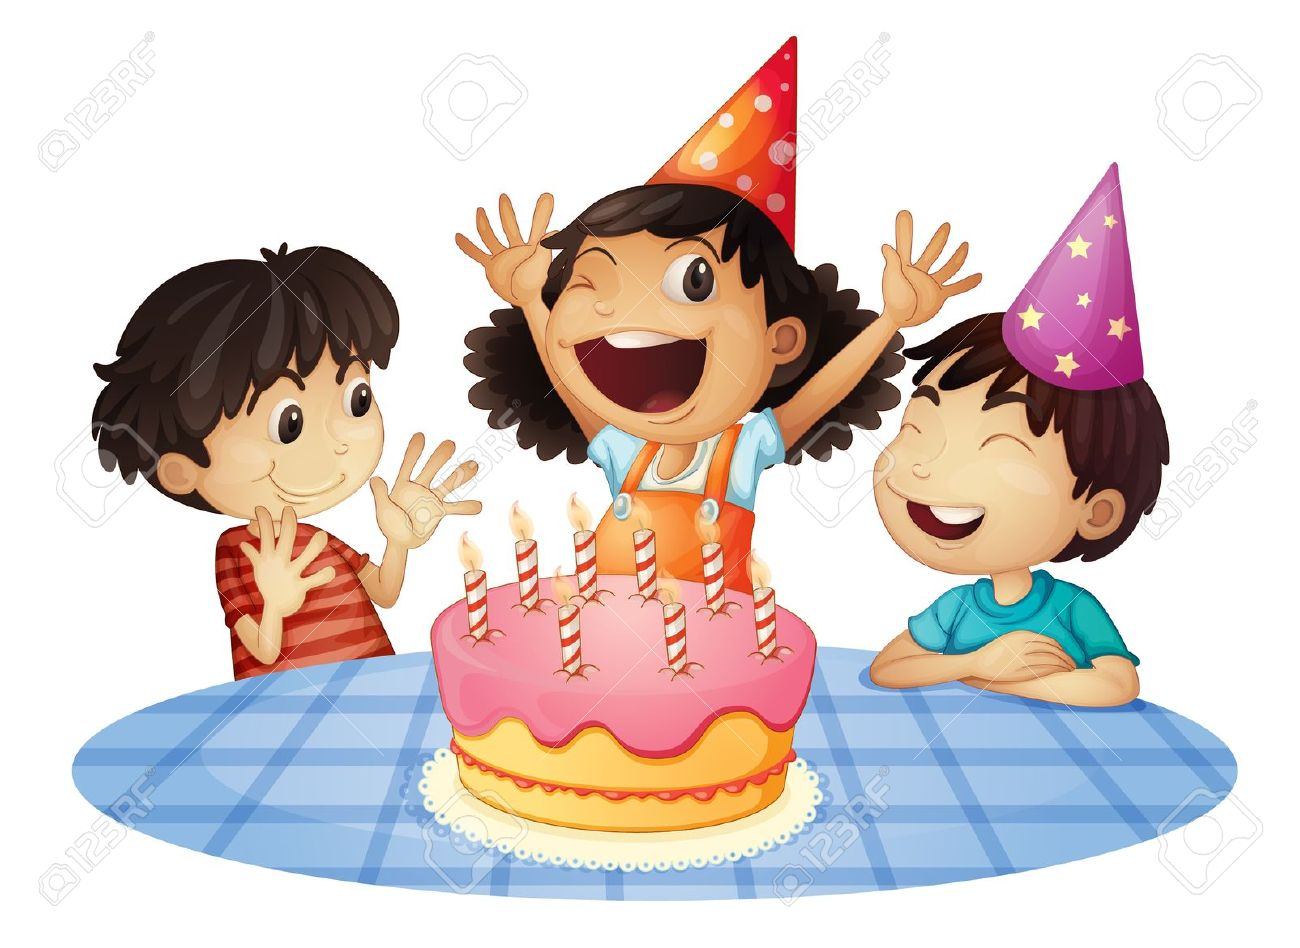 Birthday Party Clip Art Images